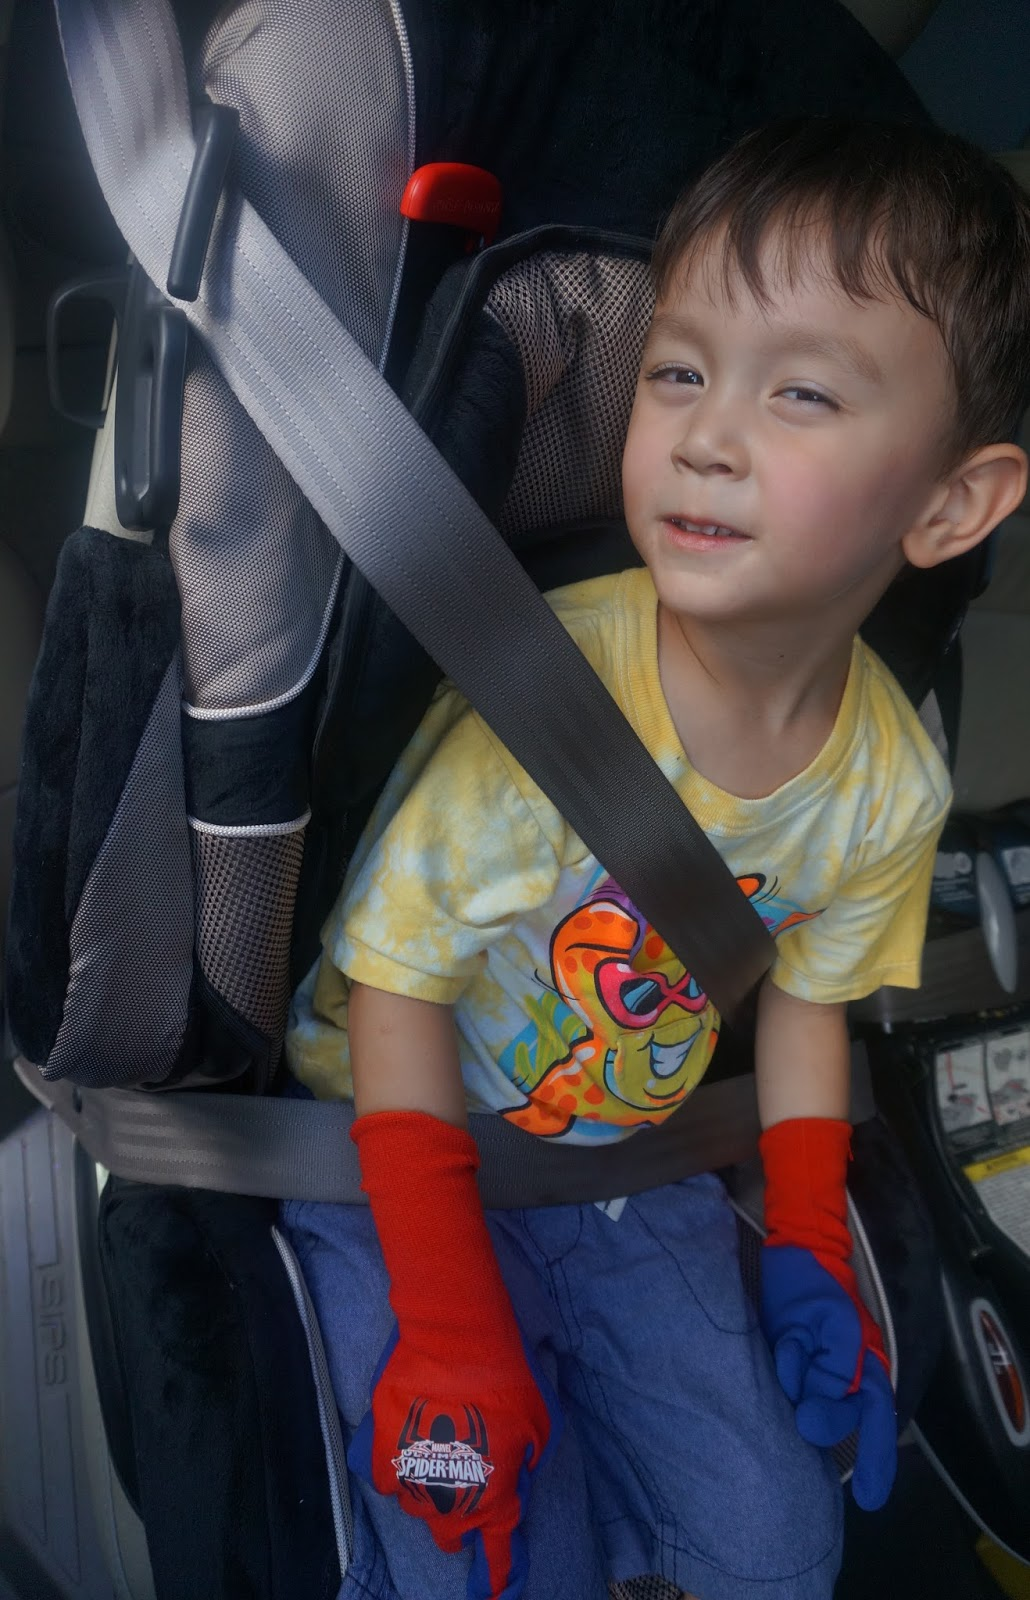 The Safety First Alpha Omega Elite Car Seat Features A Removable Cup Holder For Snacks Or Drinks With I Would Say Is Pretty Much Must Have When Going